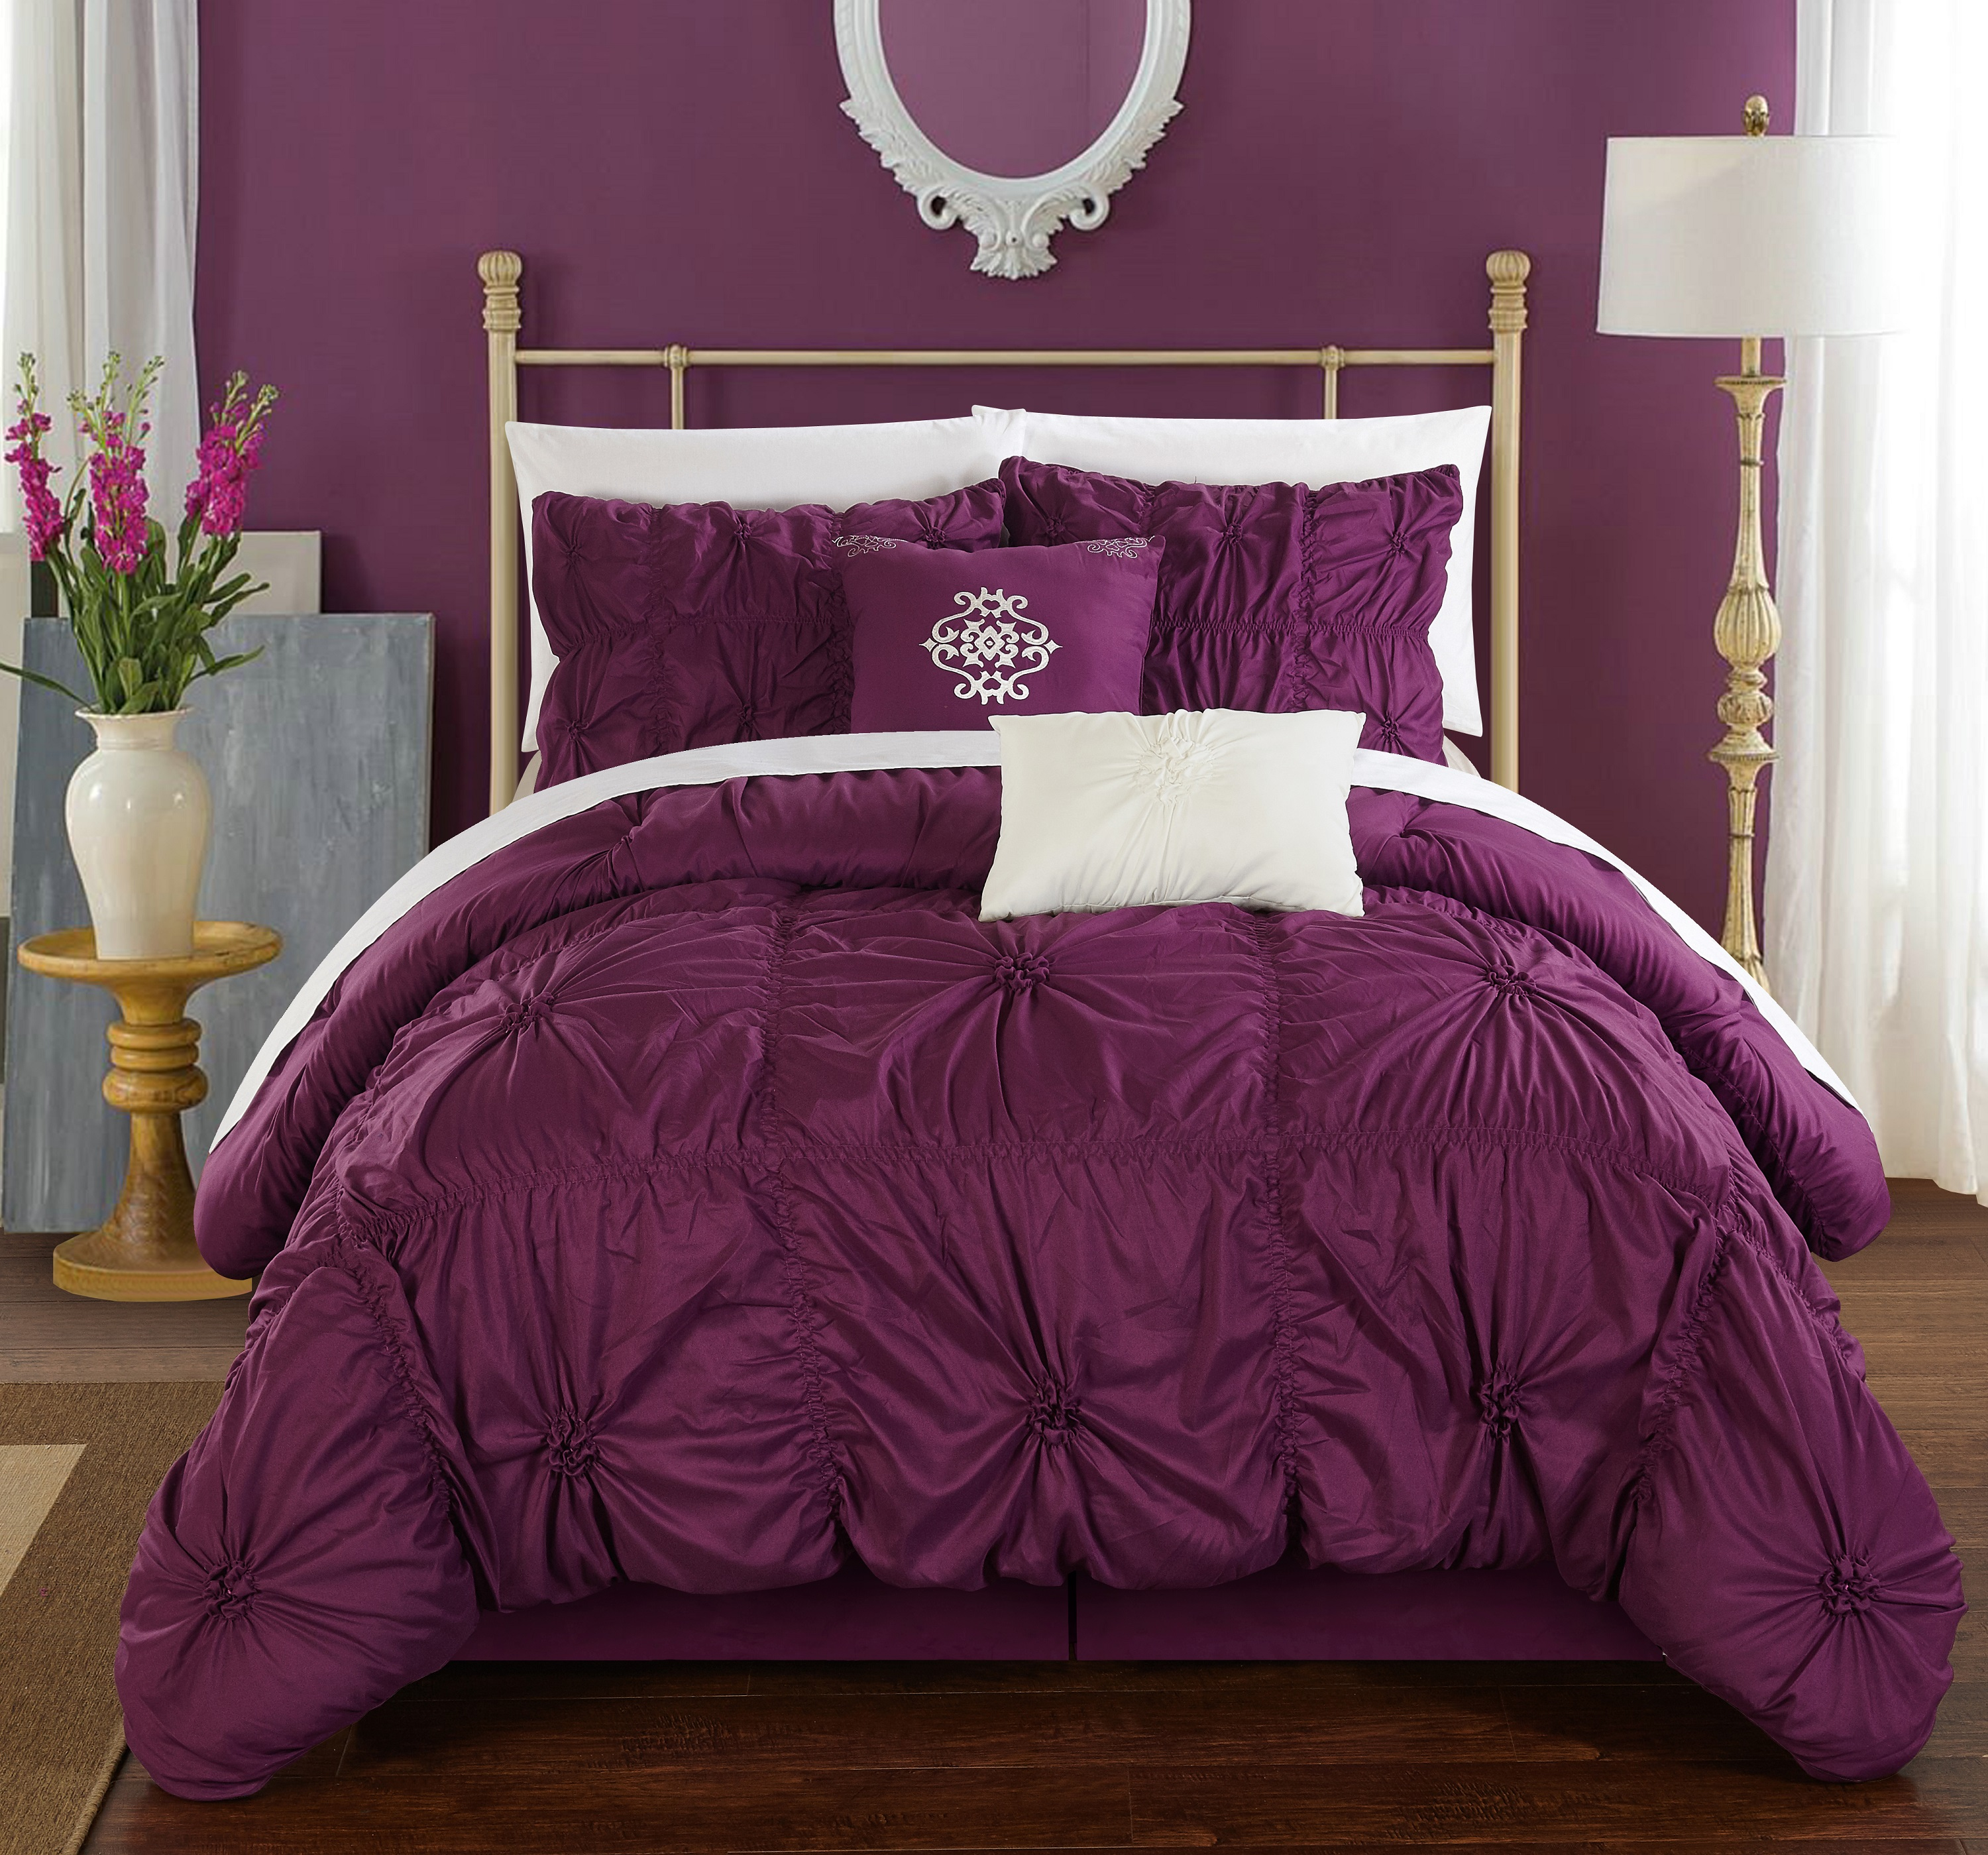 Chic Home 6-Piece Hyatt Floral Pinch Pleat Ruffled Comforter Set